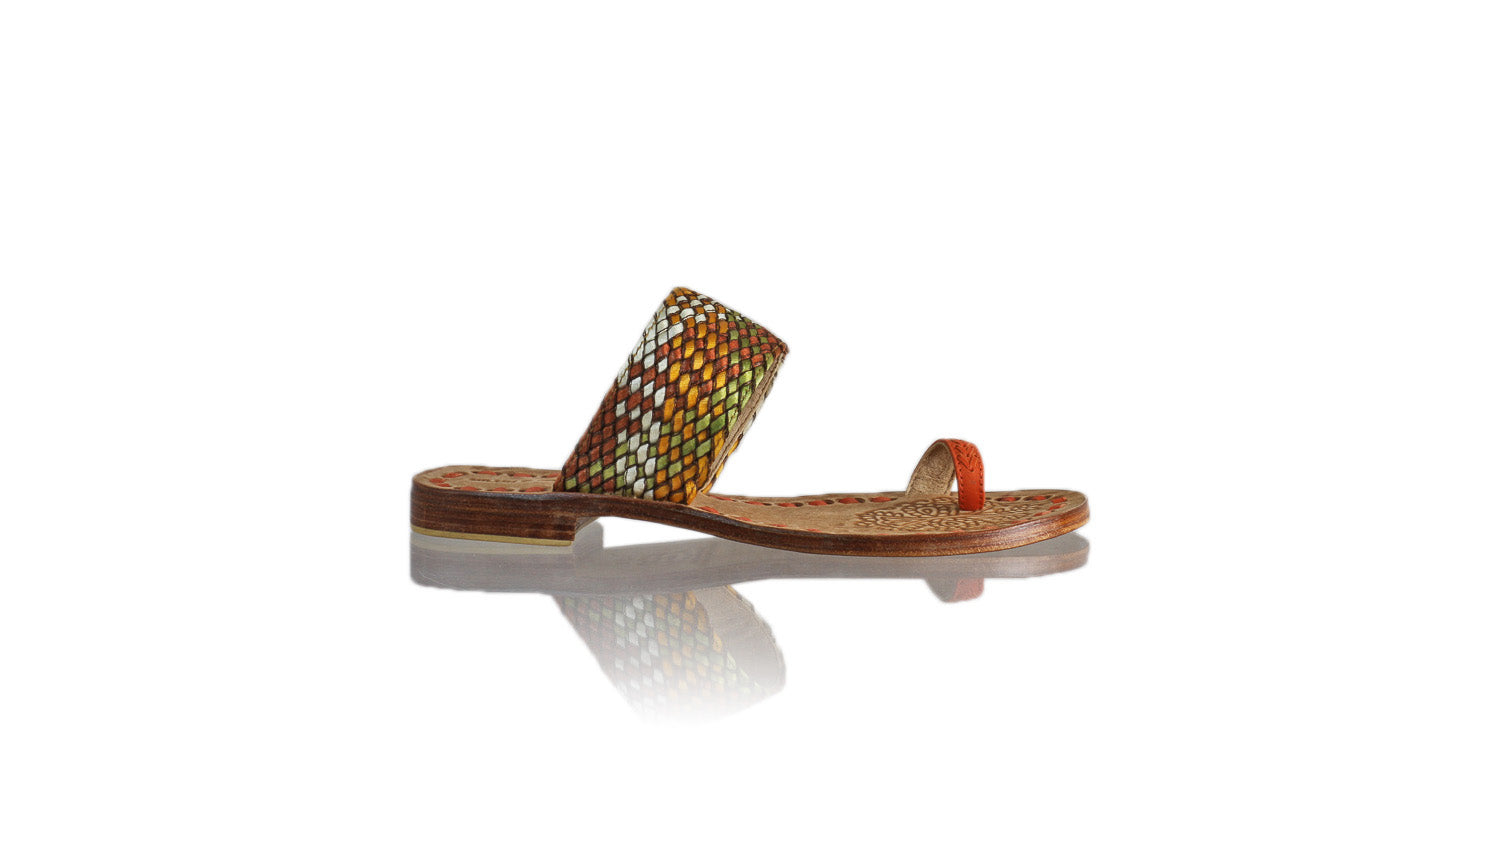 Leather-shoes-Arini 20mm Flat - Orange Multicolor Ribbon-sandals flat-NILUH DJELANTIK-NILUH DJELANTIK